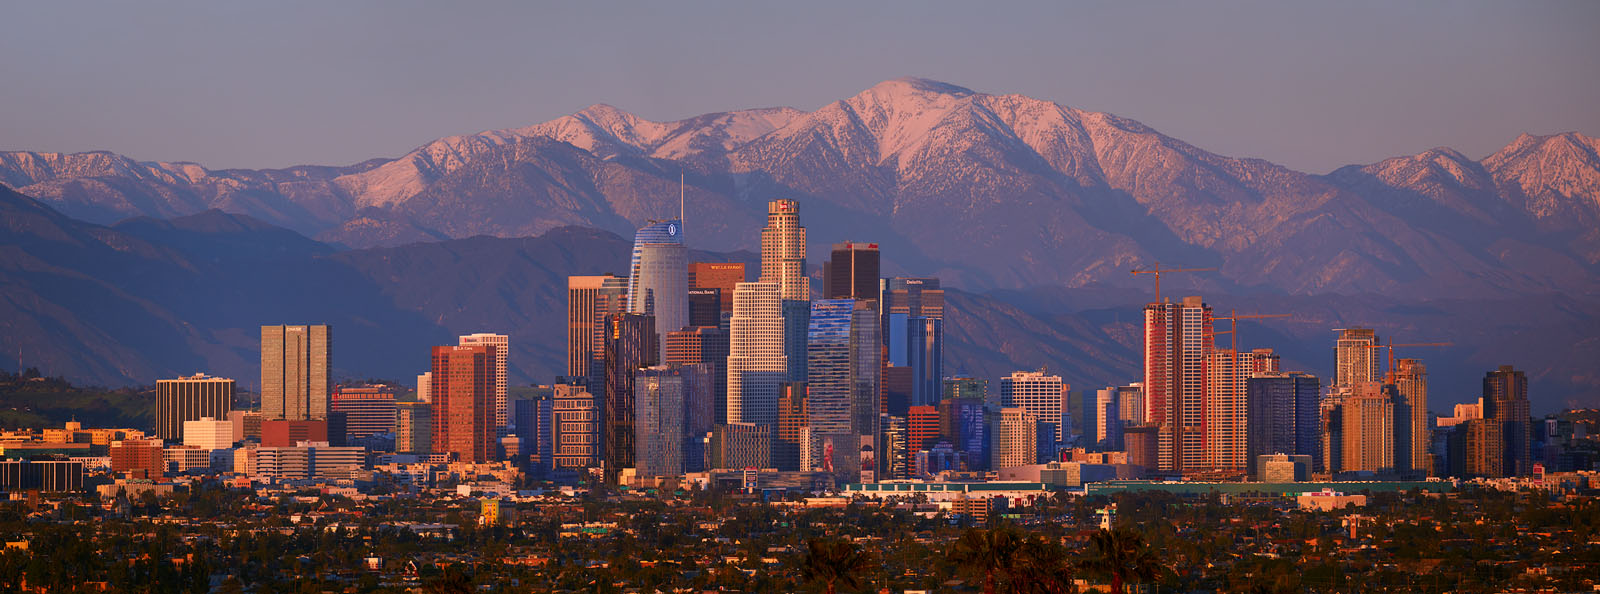 Downtown Los Angeles with Mt. Baldy